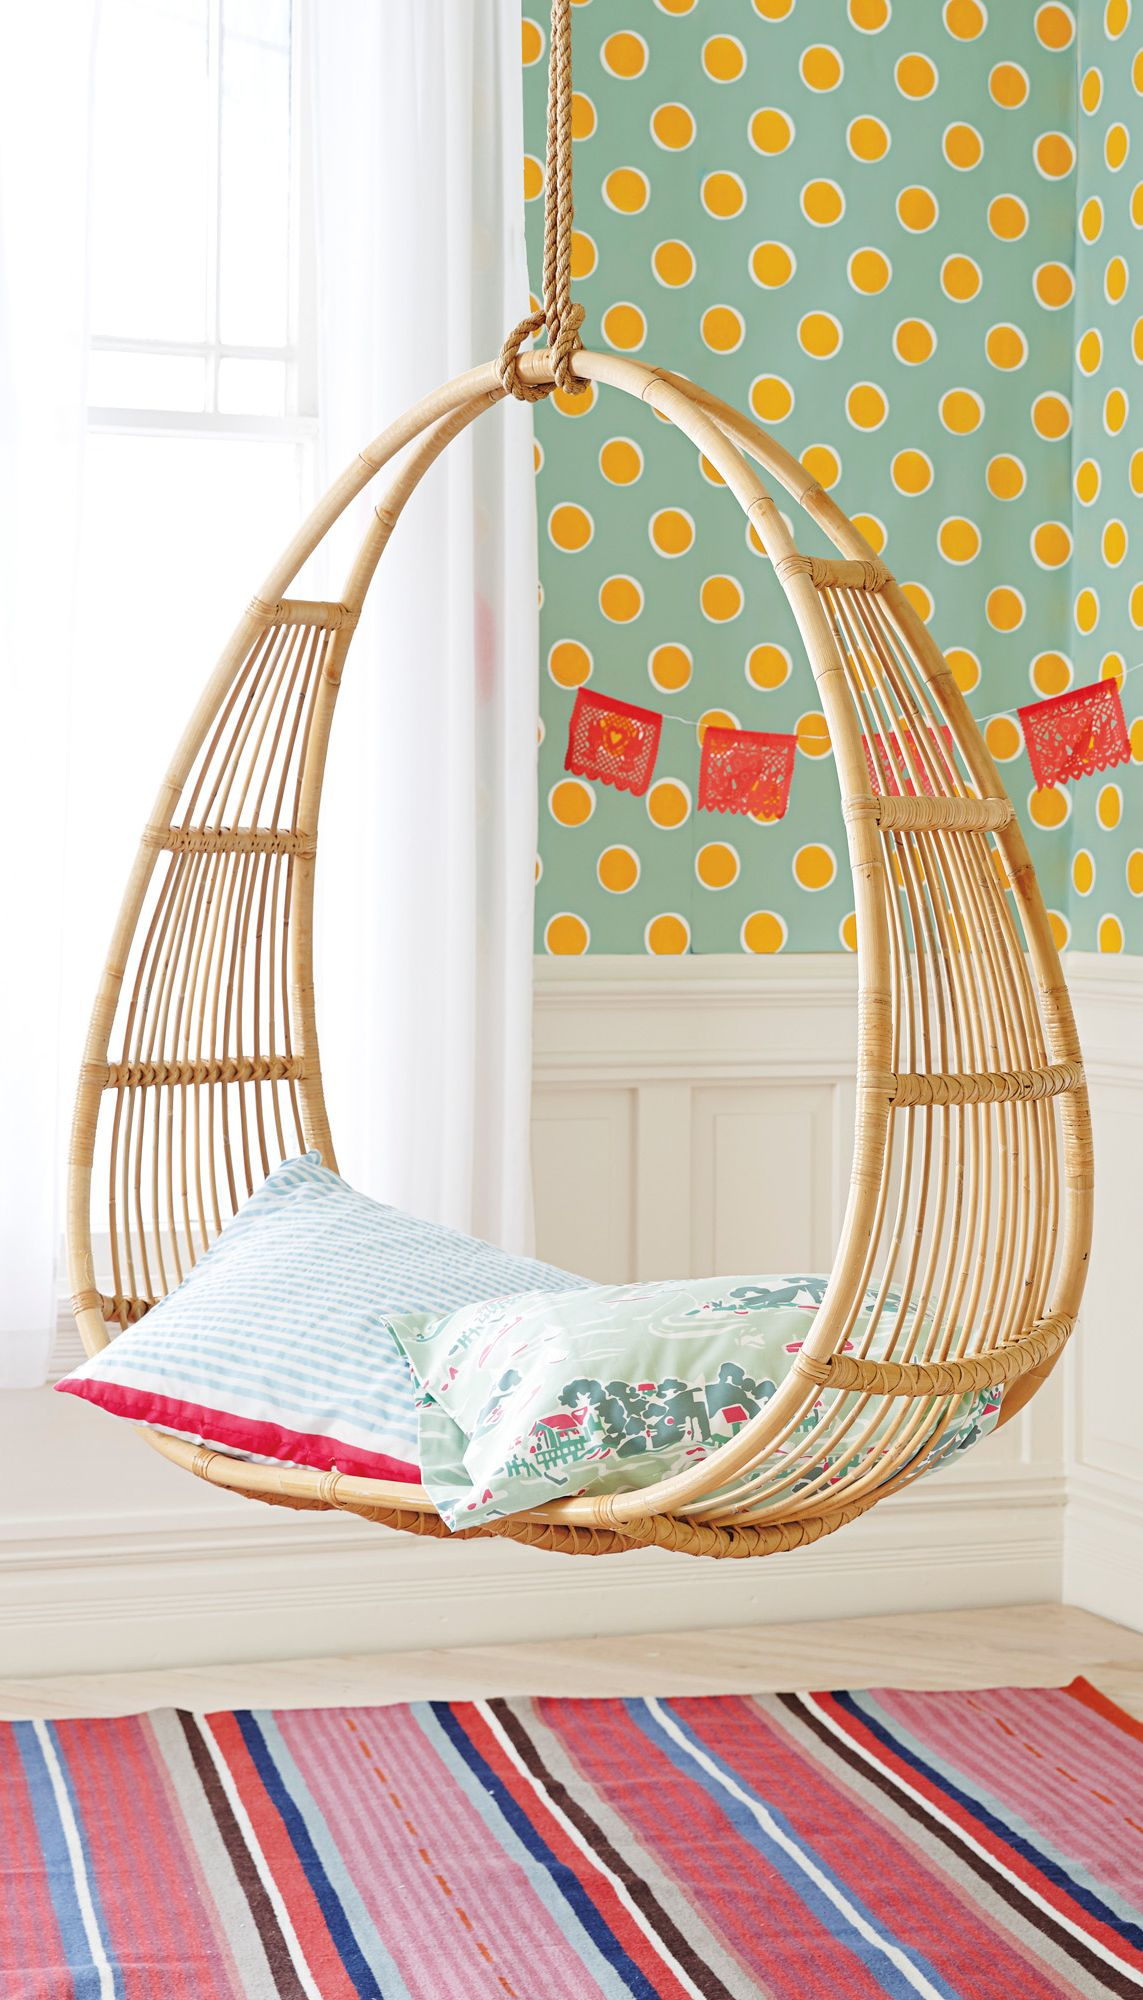 Ceiling Hanging Chair Round Hanging Chair Furnish Decor Bedroom Hanging Chair